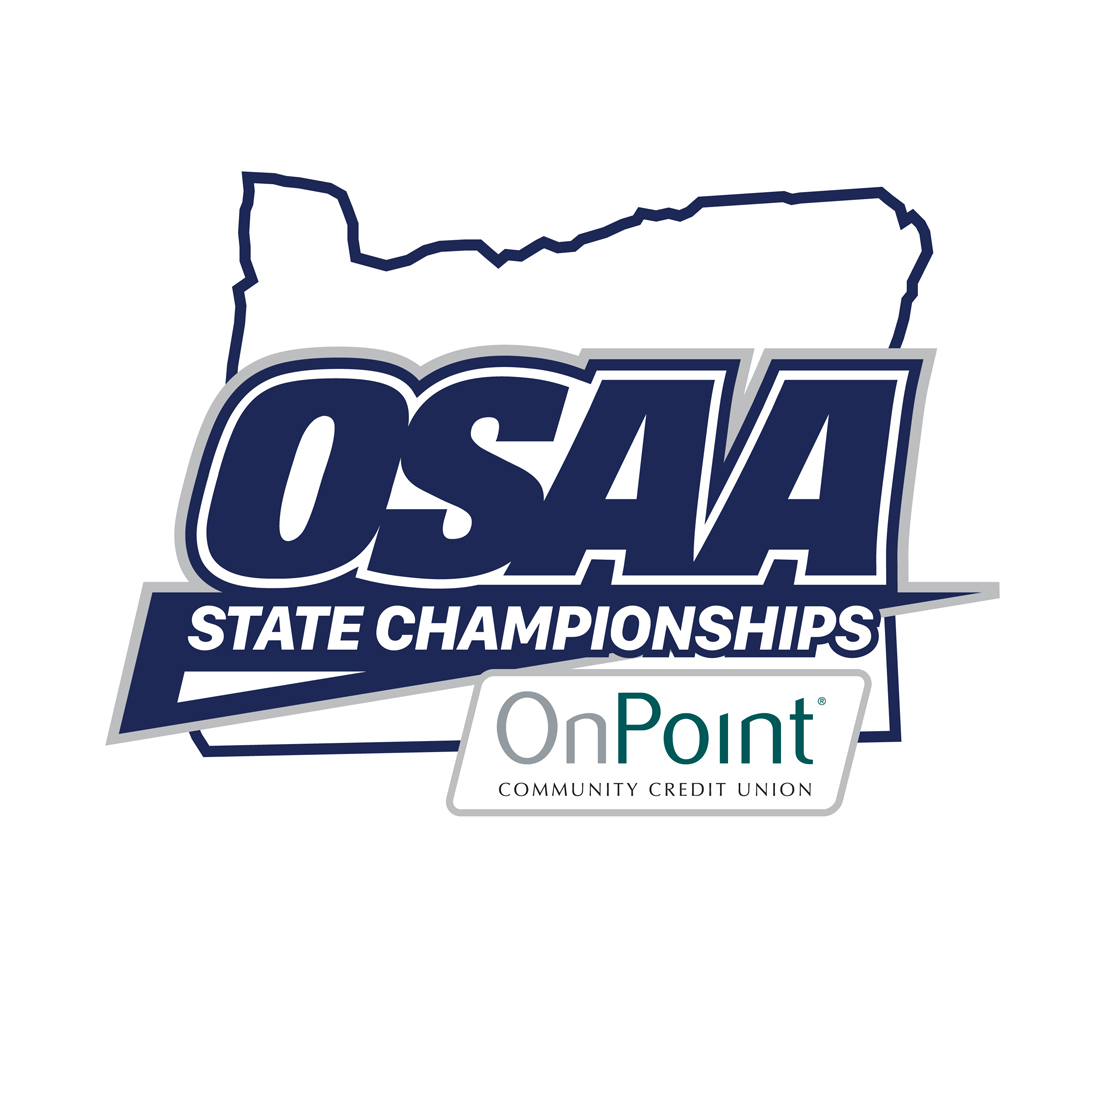 OnPoint is the New Title Sponsor for the Oregon School Activities Association's High School State Championships